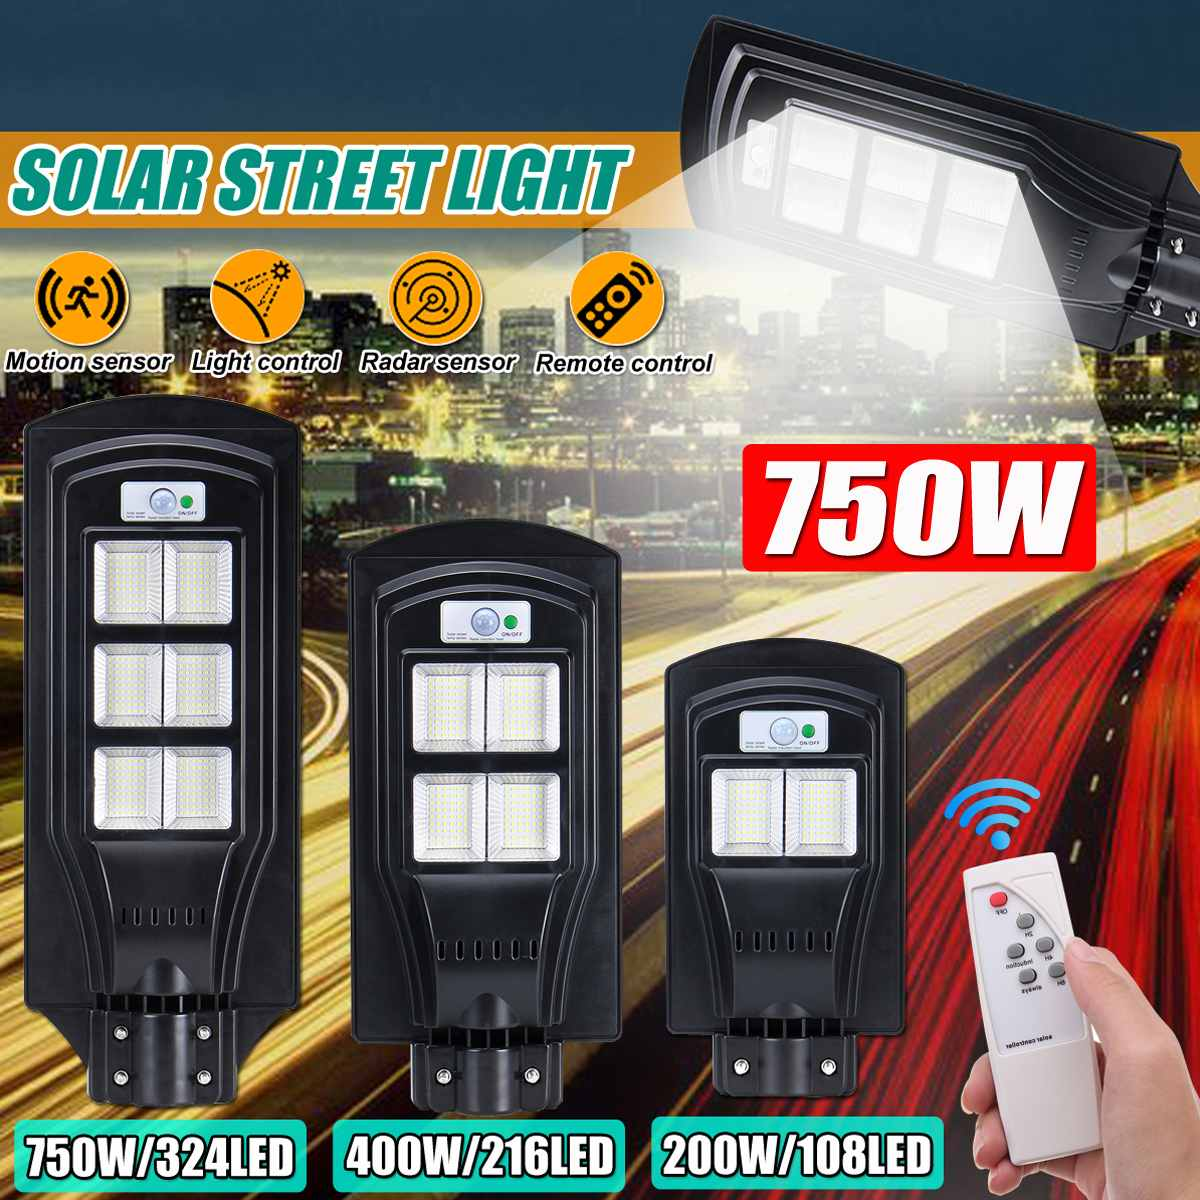 New Led Solar Street Light Waterproof Outdoor Lighting 200W/400W/750W Rador-Motion Wall Light With RC For Garden Yard Plaza